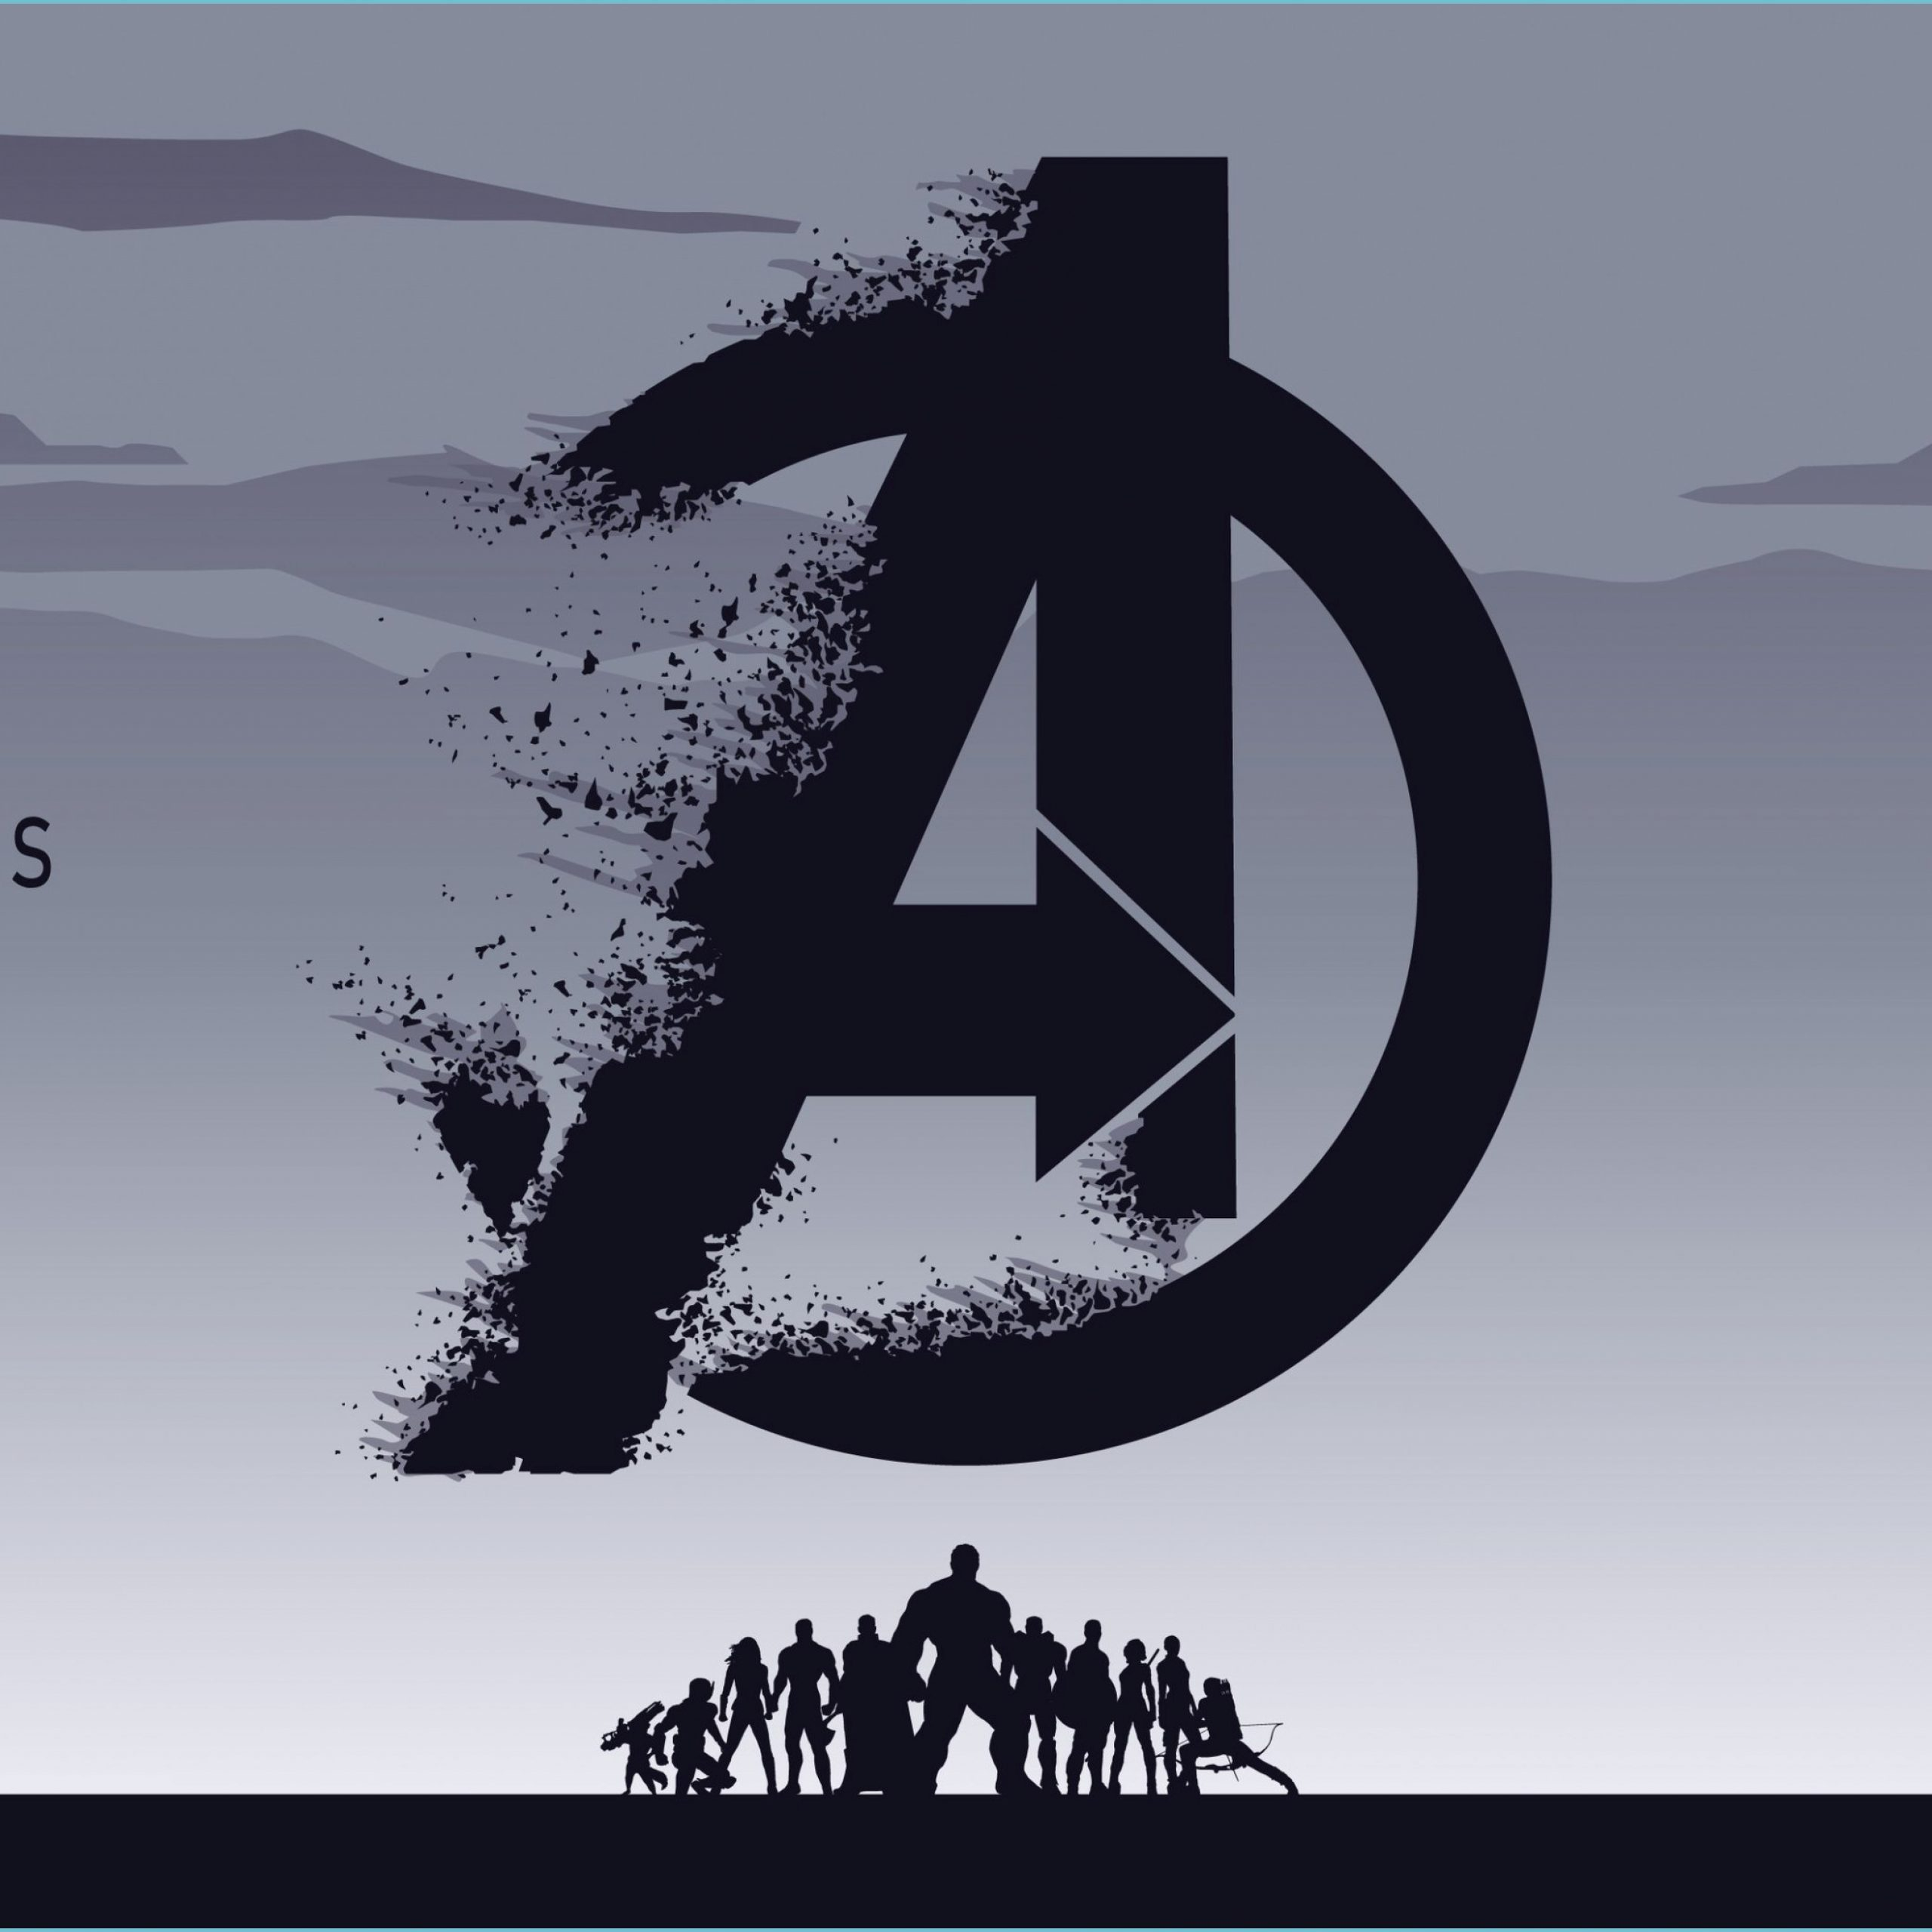 avengers endgame there was an idea 10k superheroes wallpapers 4k wallpaper for laptop